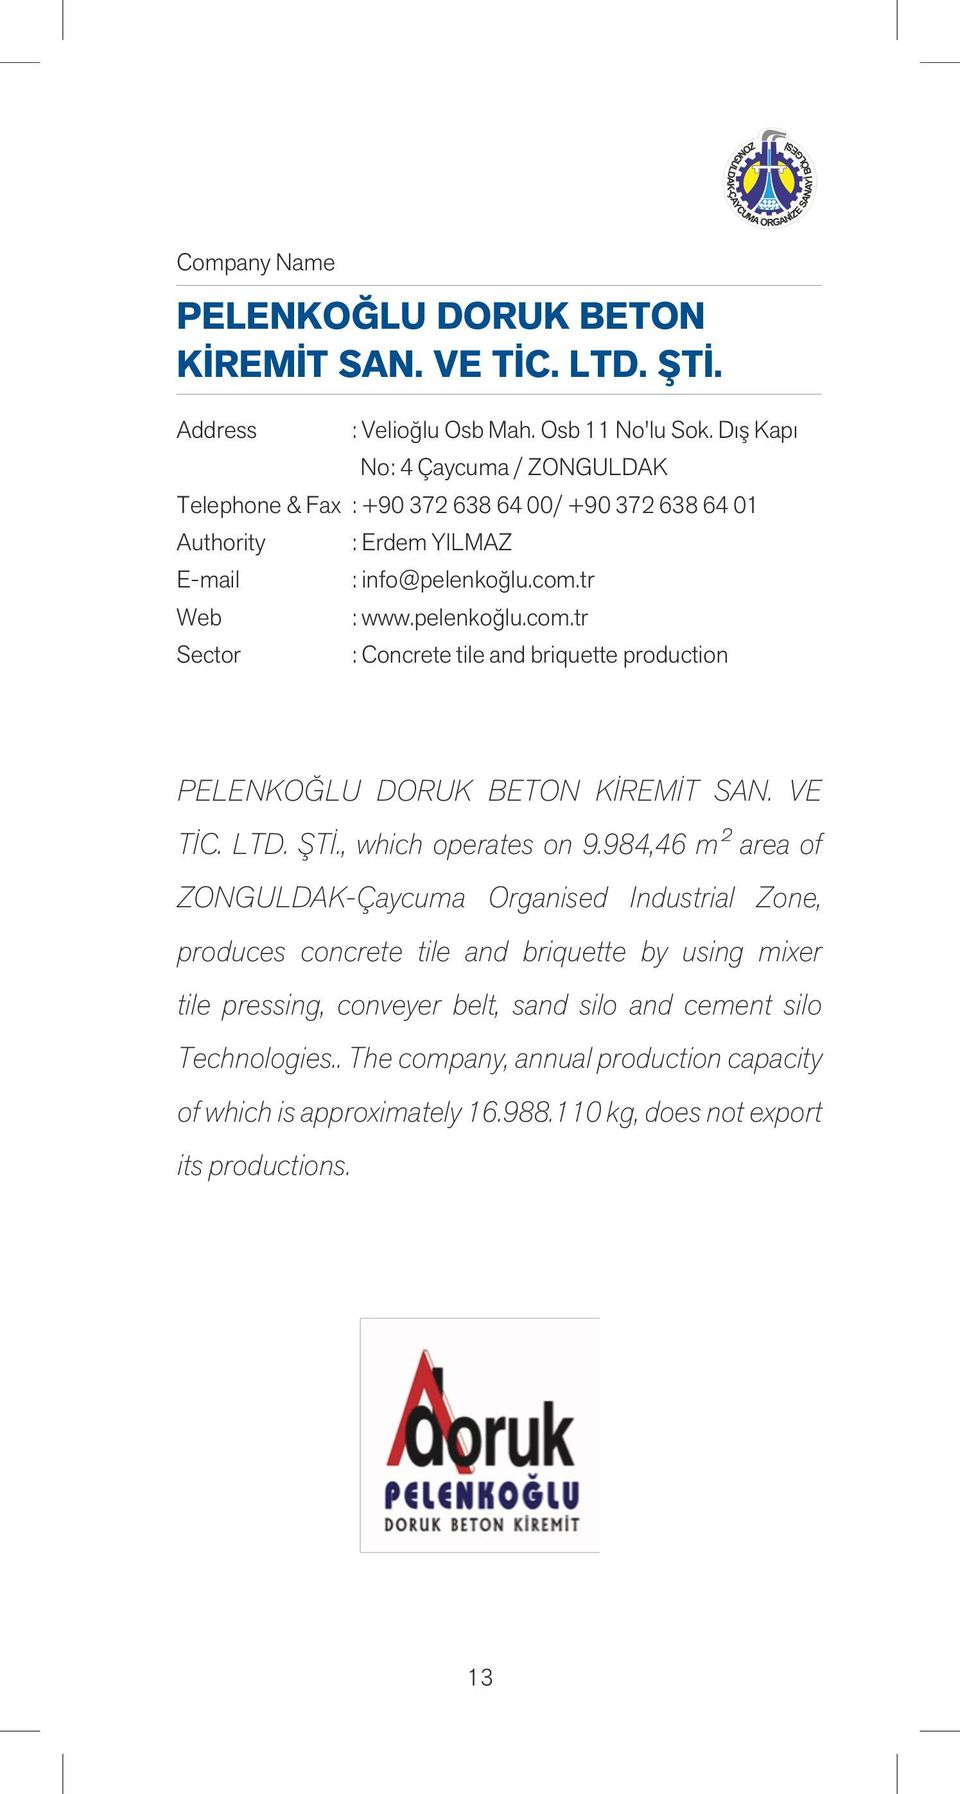 tr : www.pelenkoğlu.com.tr : Concrete tile and briquette production PELENKOĞLU DORUK BETON KİREMİT SAN. VE TİC. LTD. ŞTİ., which operates on 9.